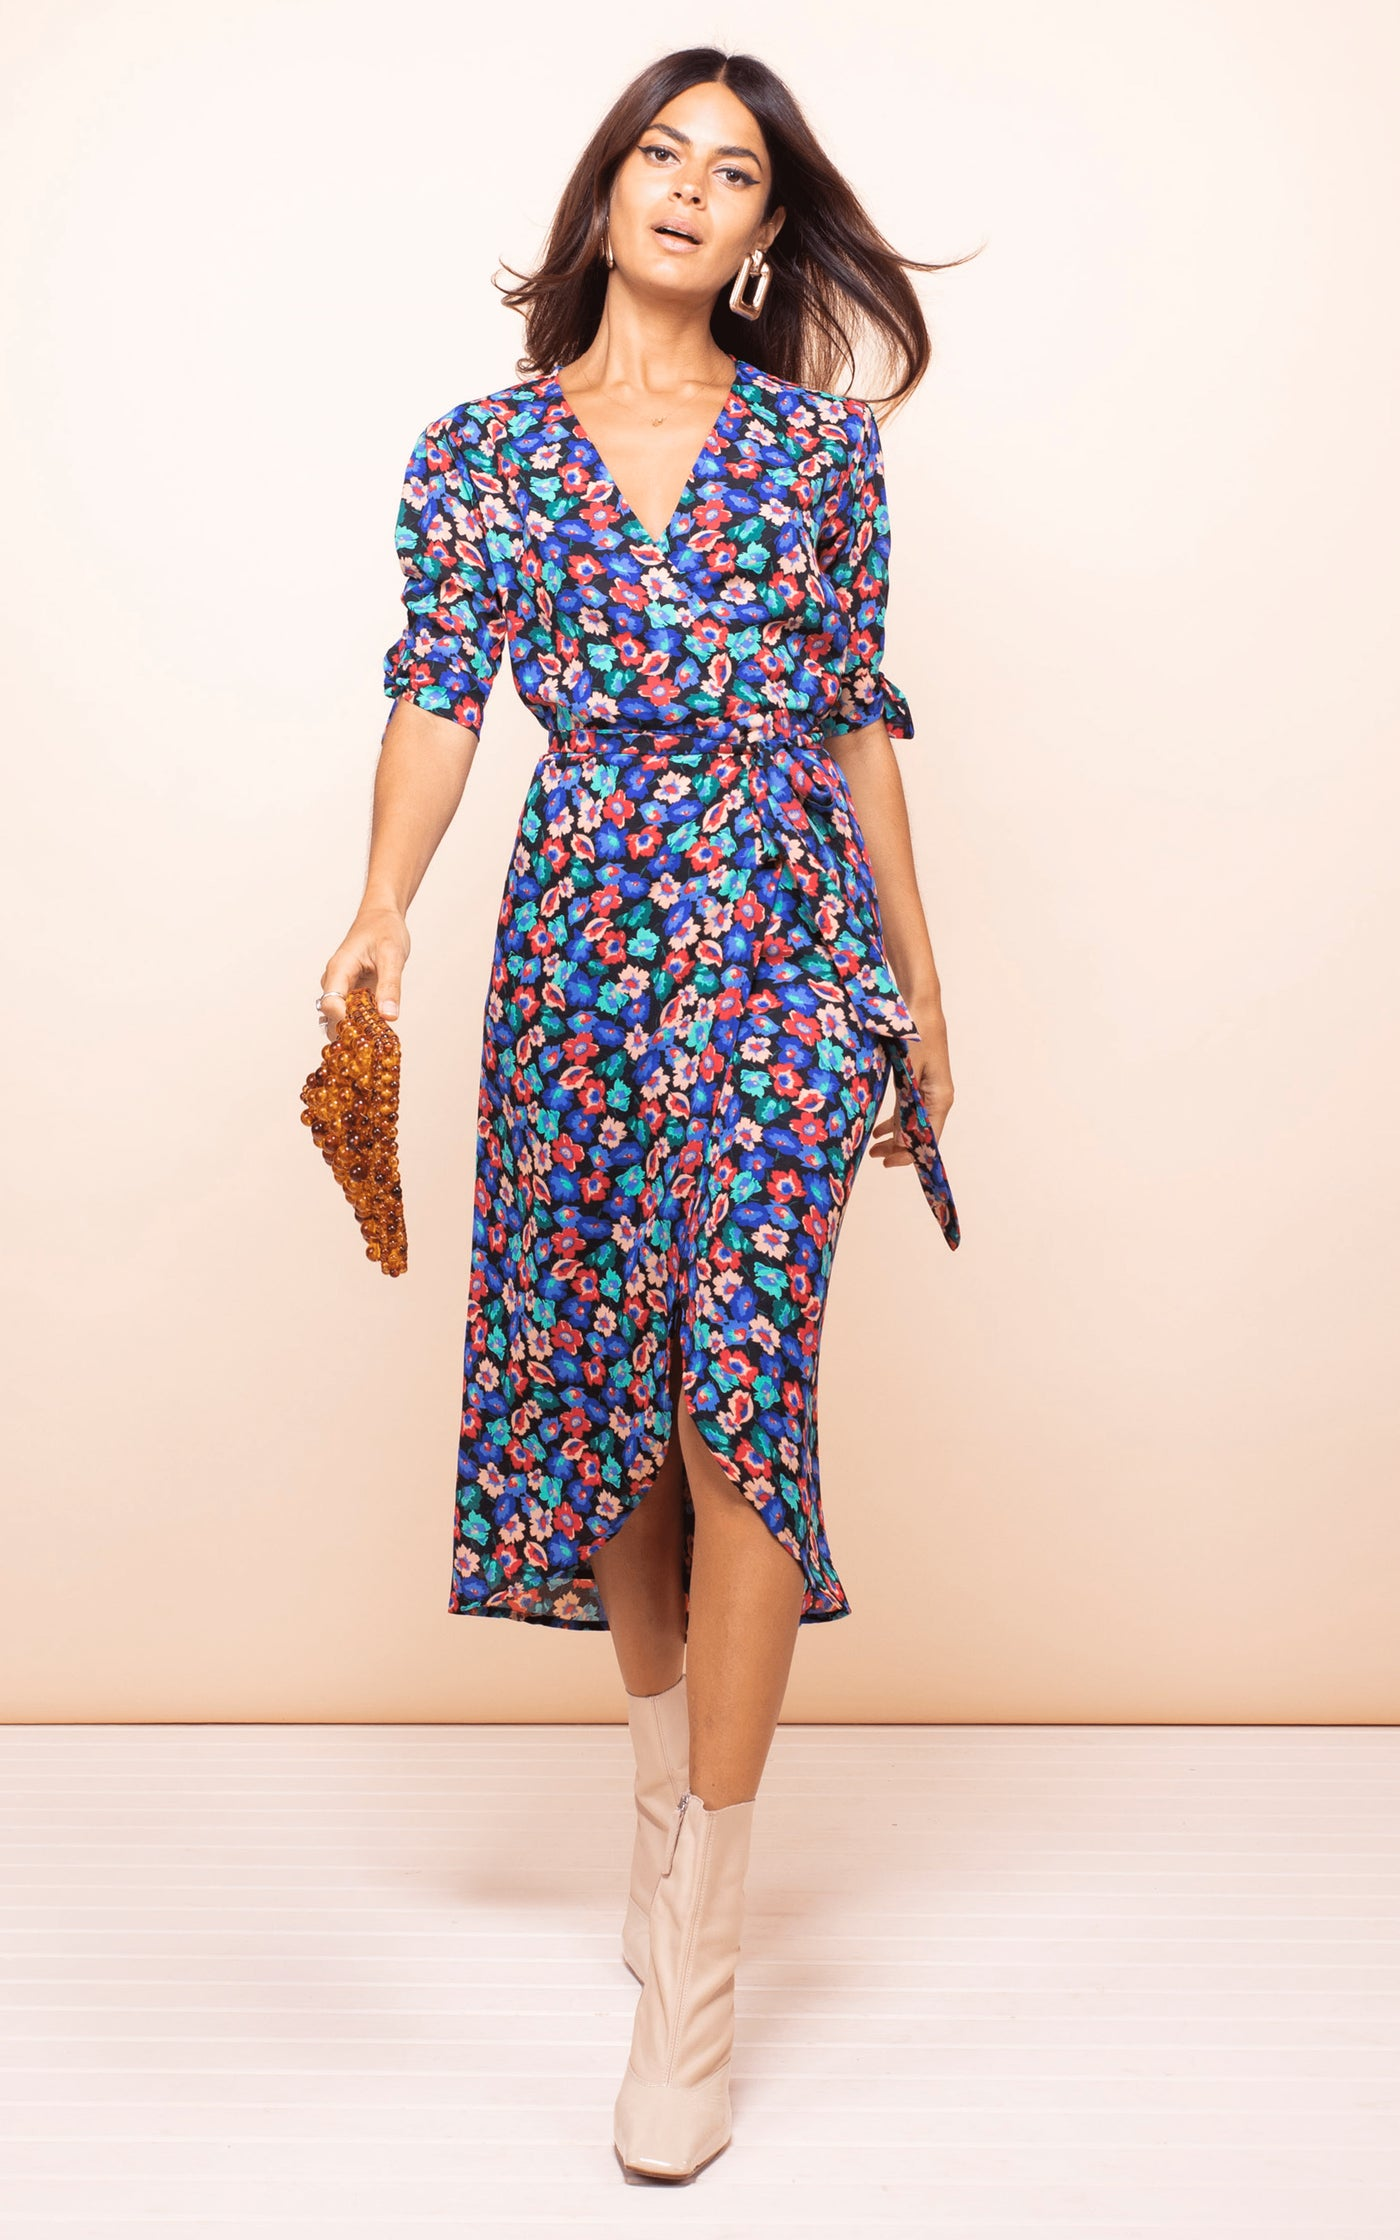 Model walks forwards wearing Dancing Leopard Olivera Midi Dress in floral print with white boots